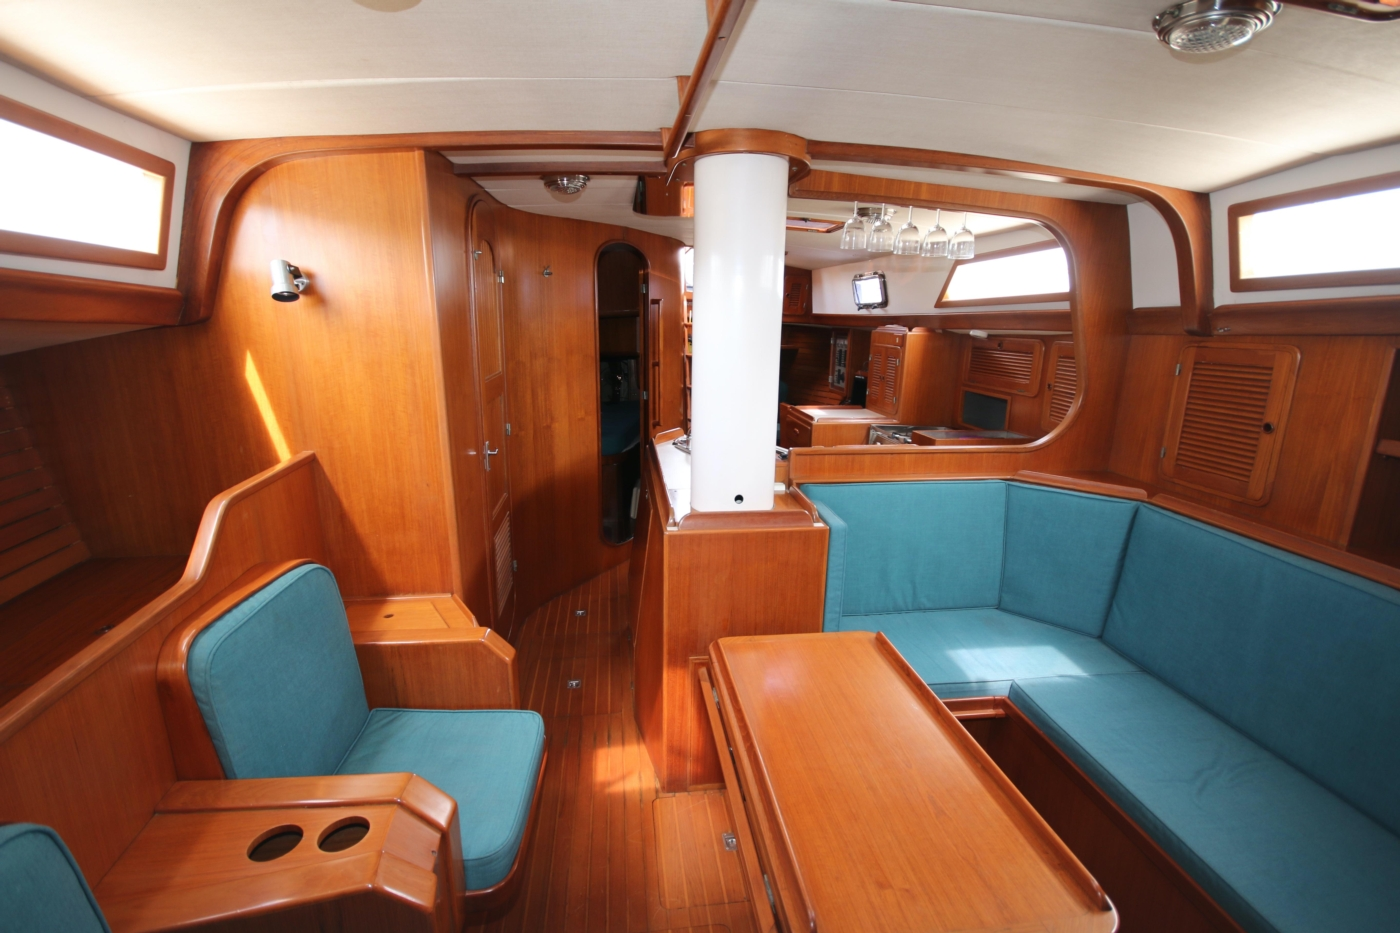 1996 Tanton 45 Offshore, Salon aft view